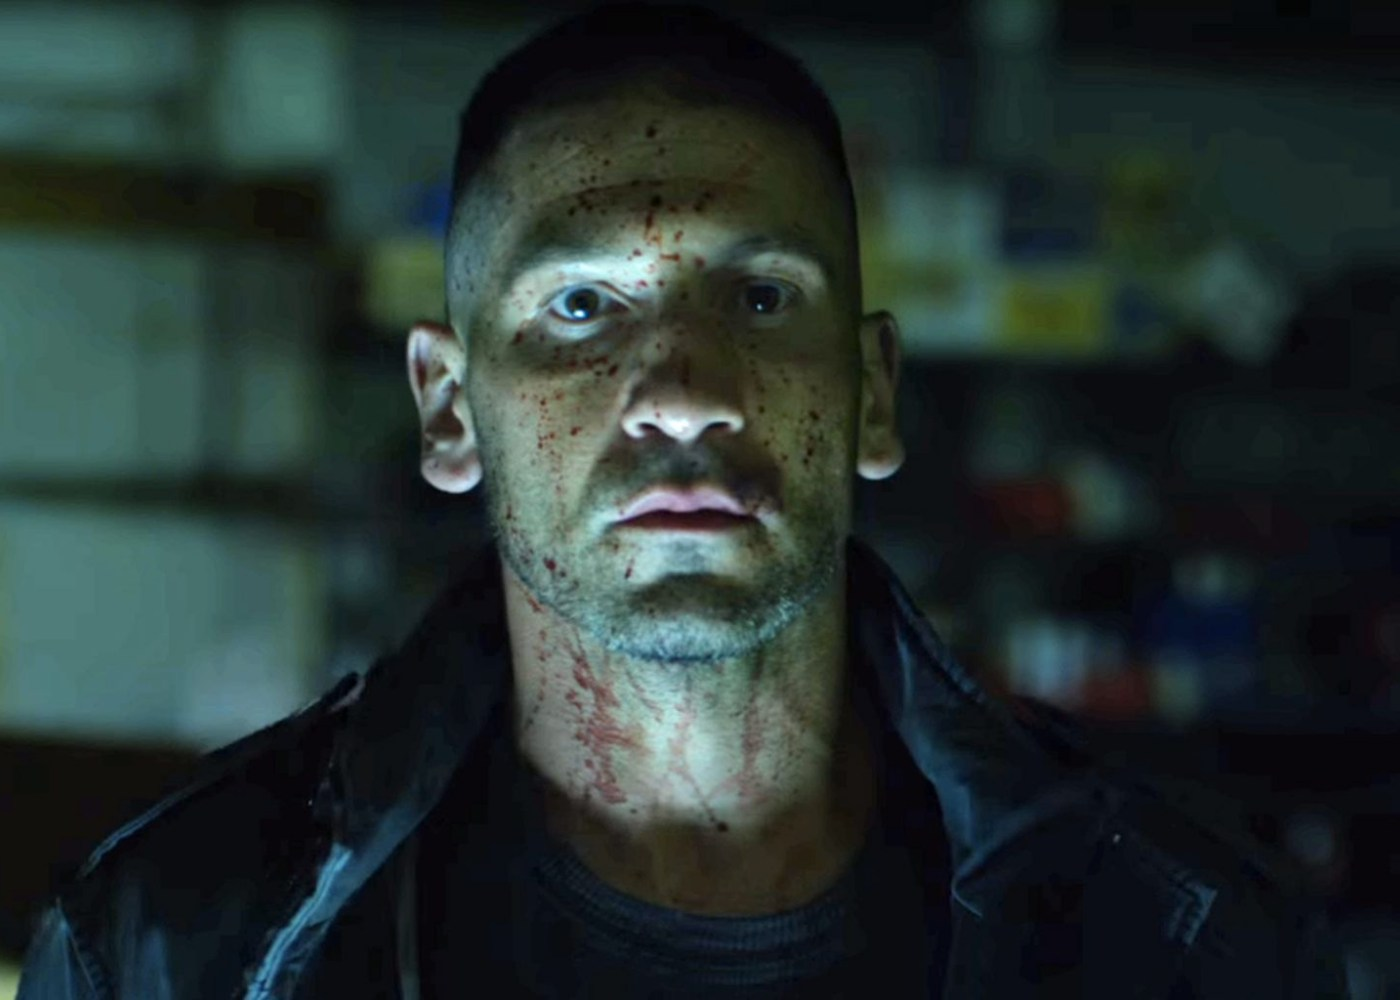 WATCH: New Teaser Warns the Punisher is Ready to Collect